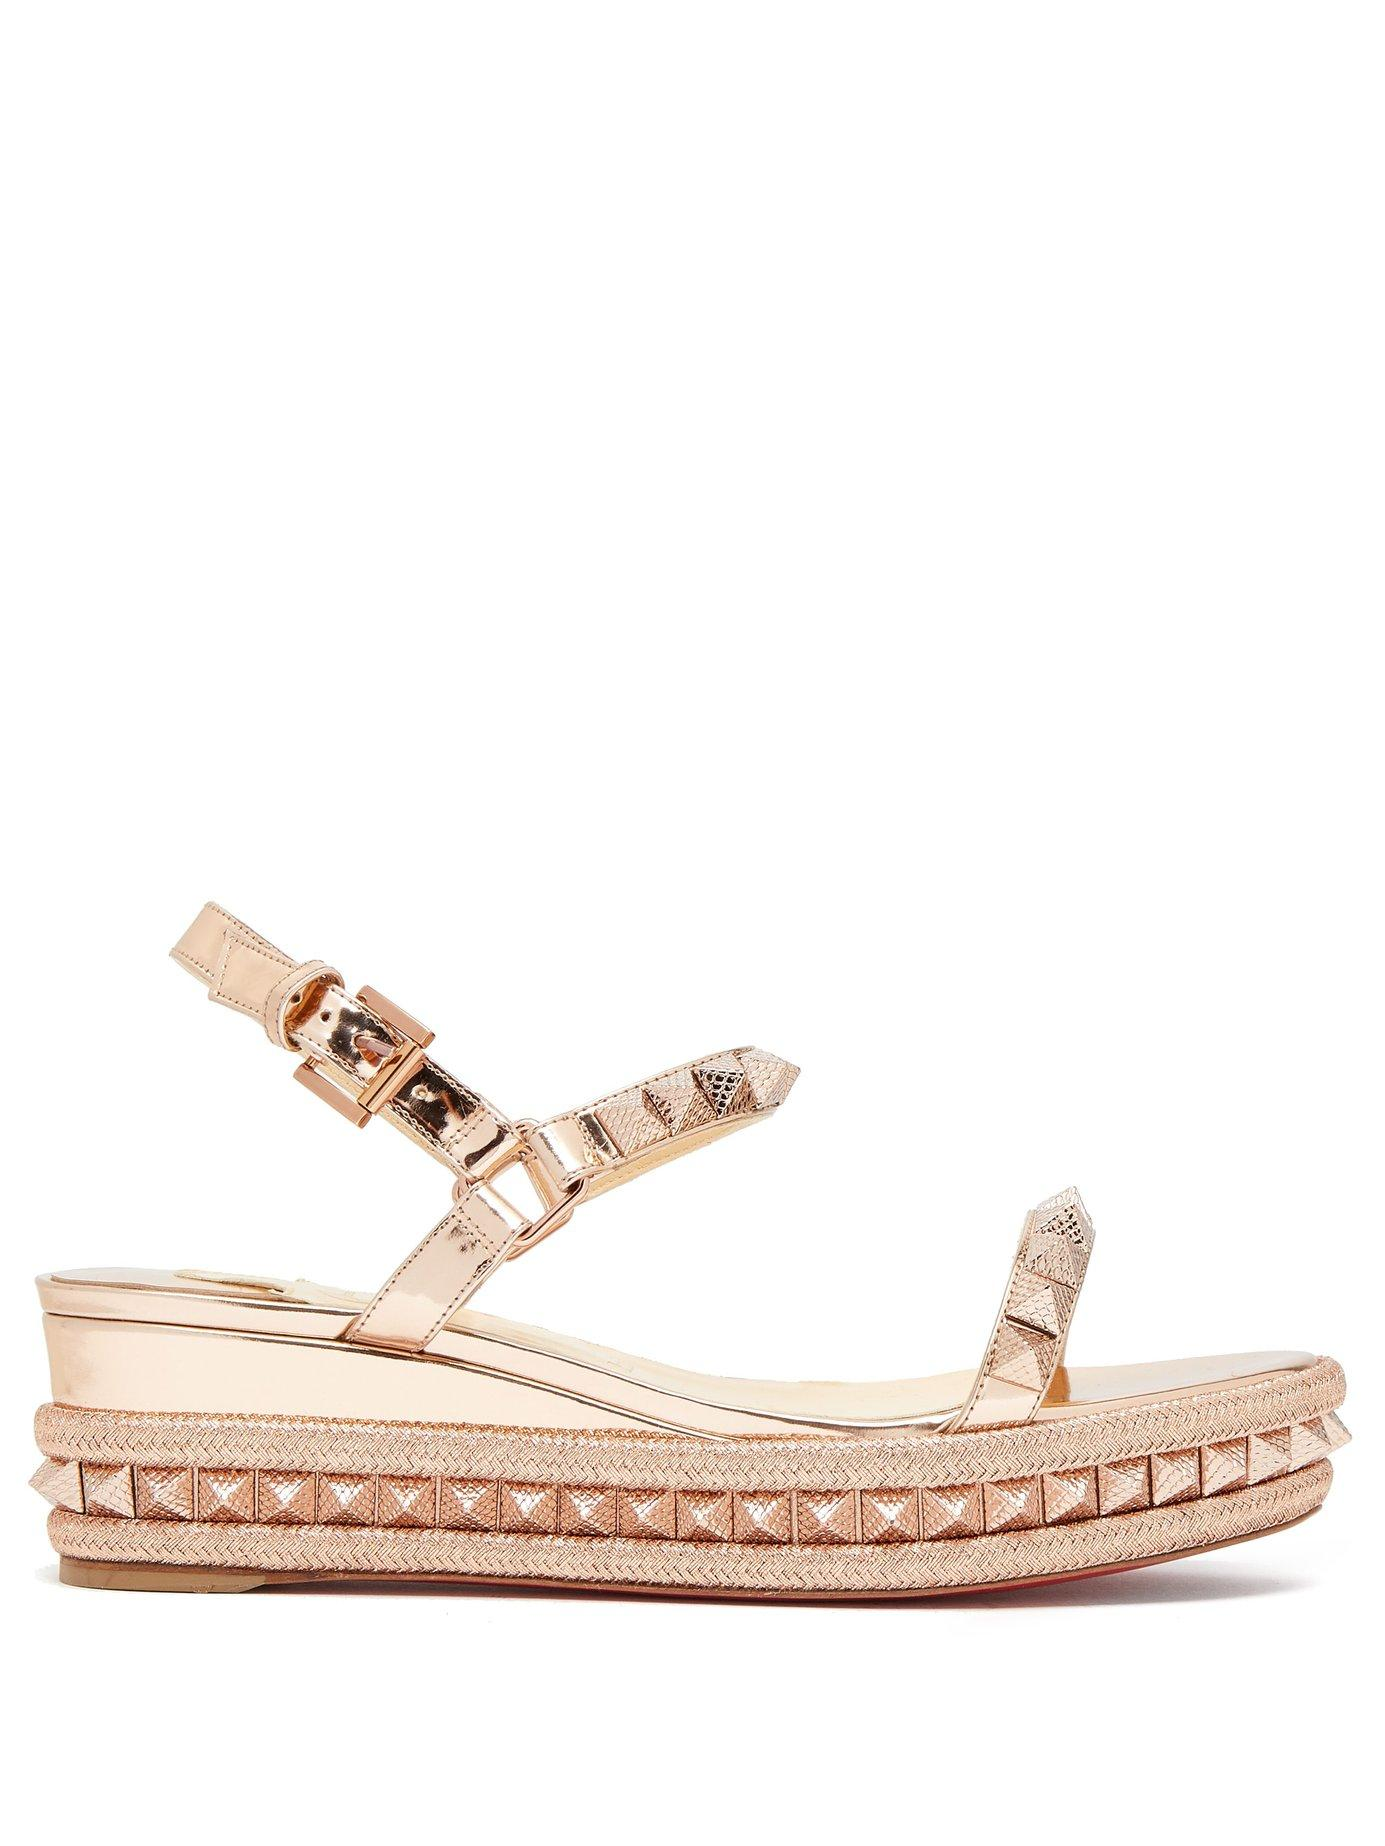 reputable site f6814 619ef Cataclou 60 Embellished Patent-Leather Wedge Espadrille Sandals in Neutral